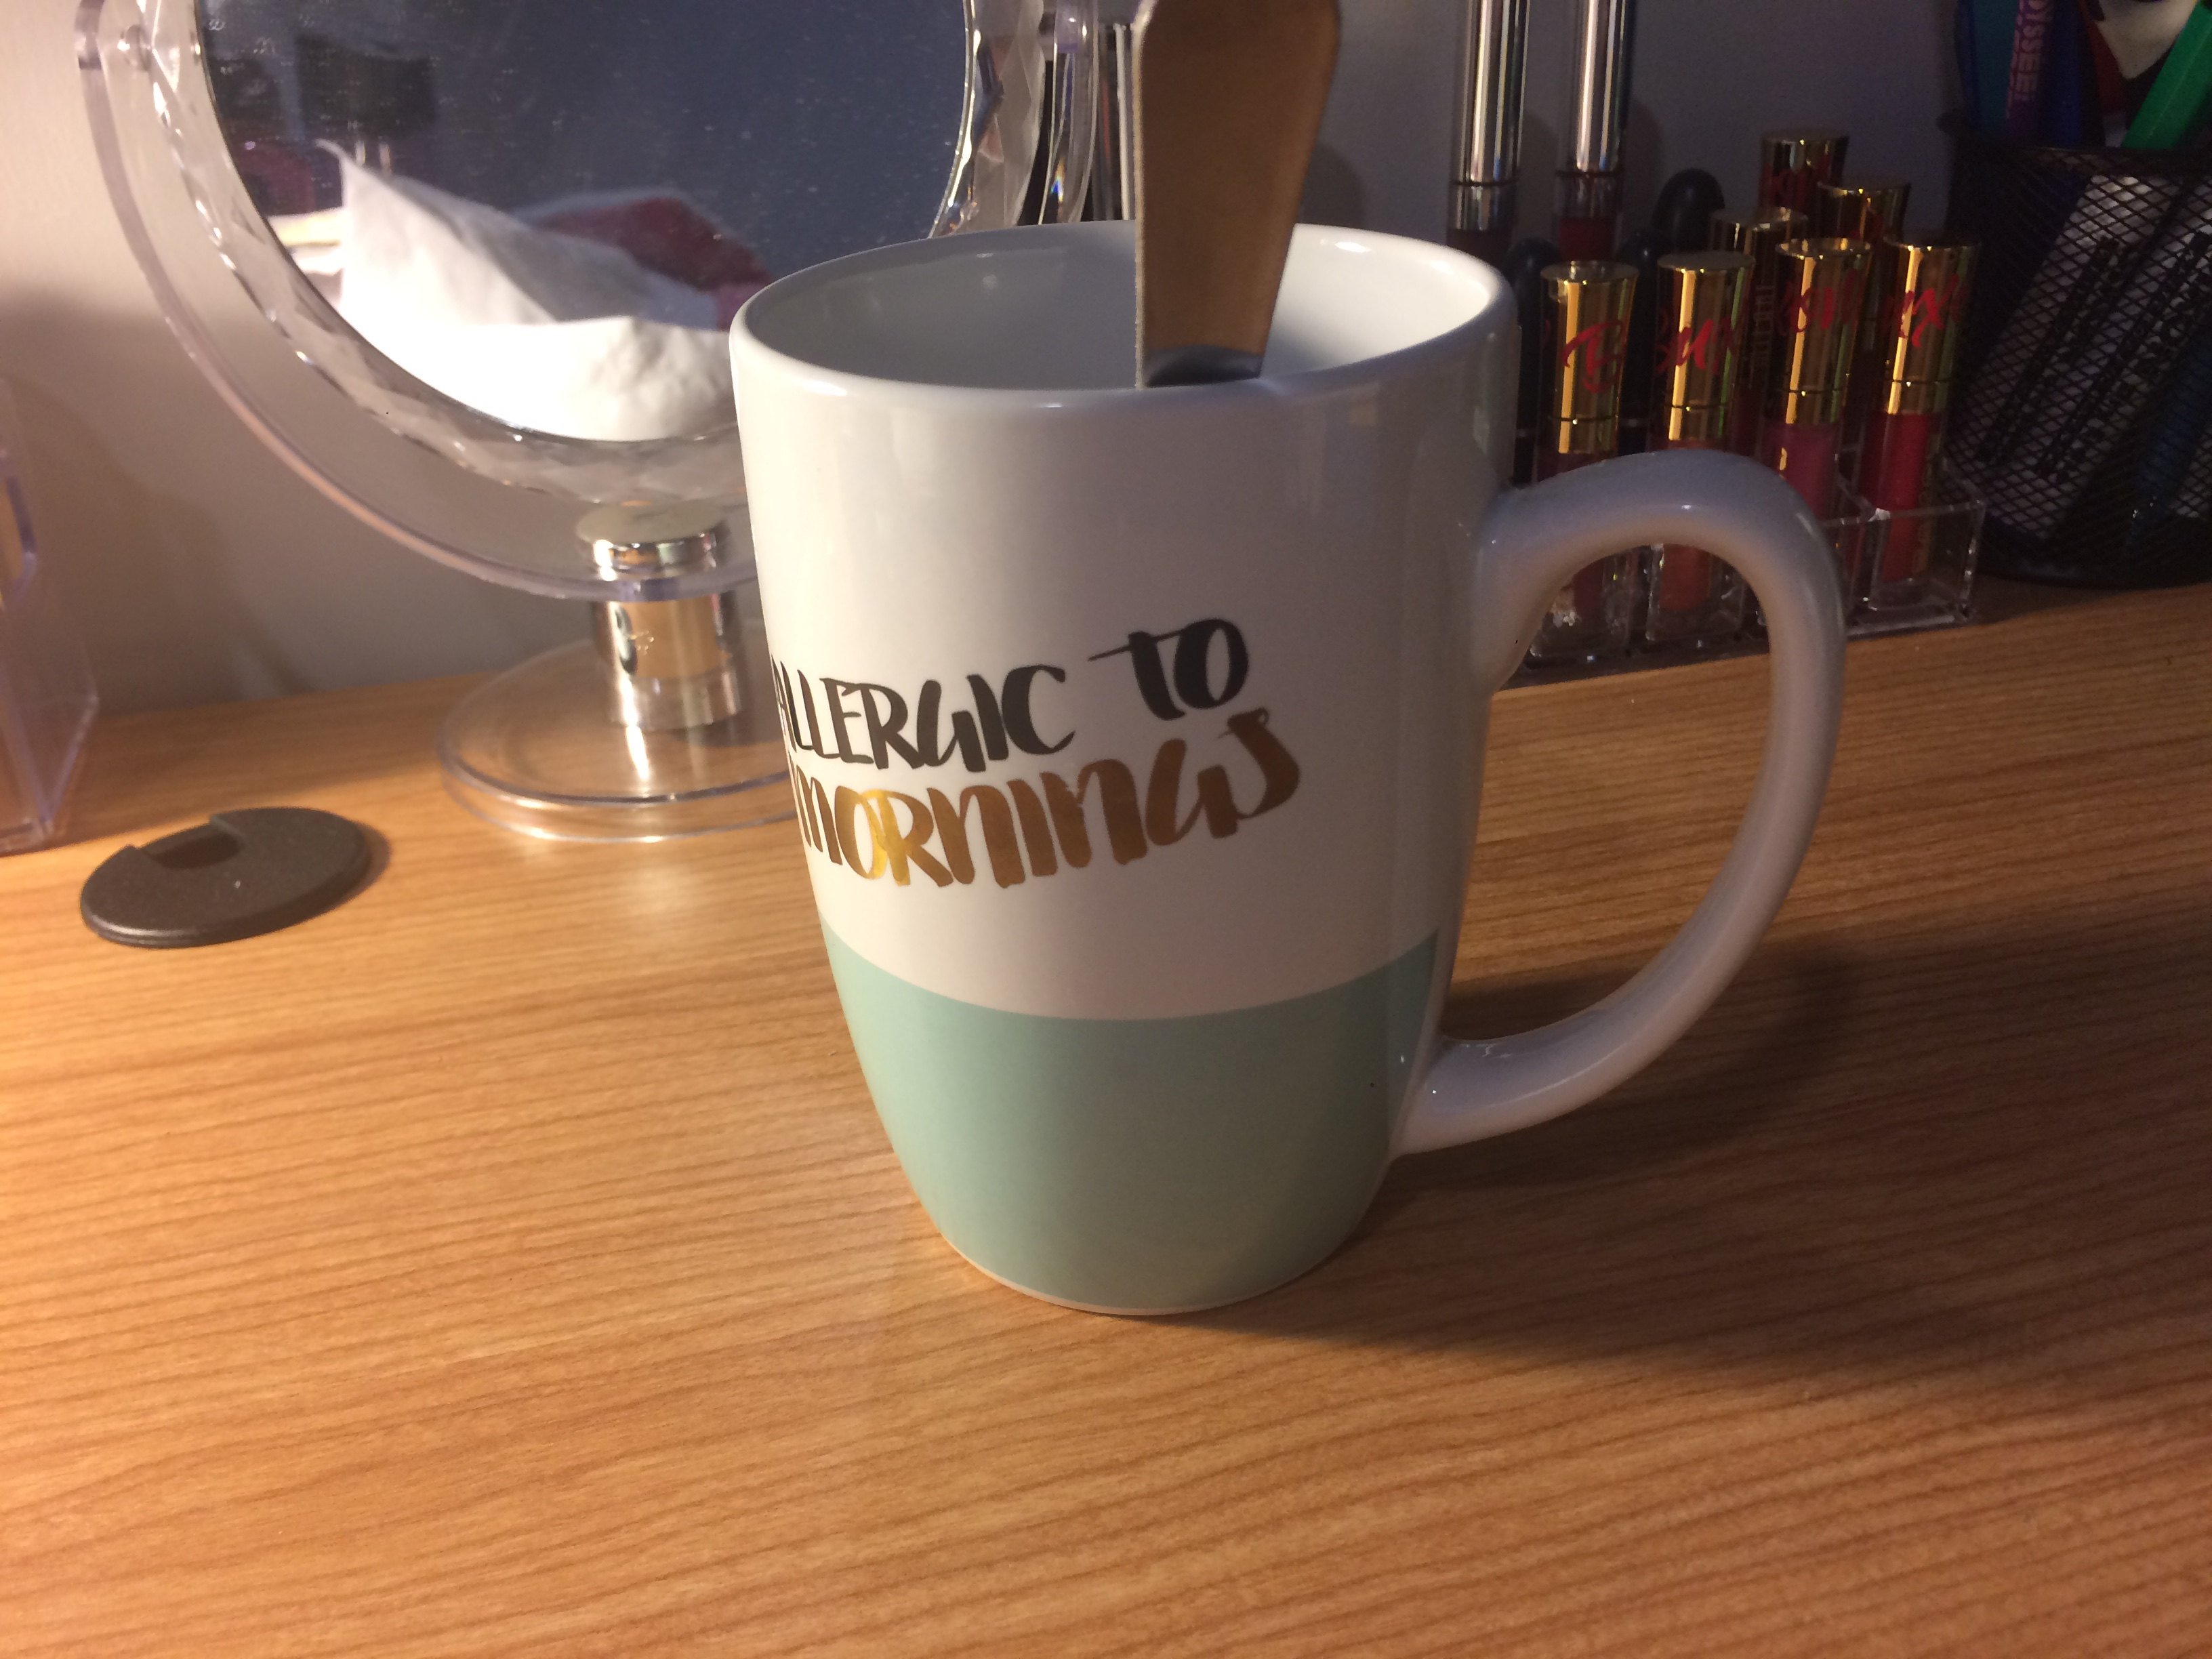 A picture of my favorite tea mug